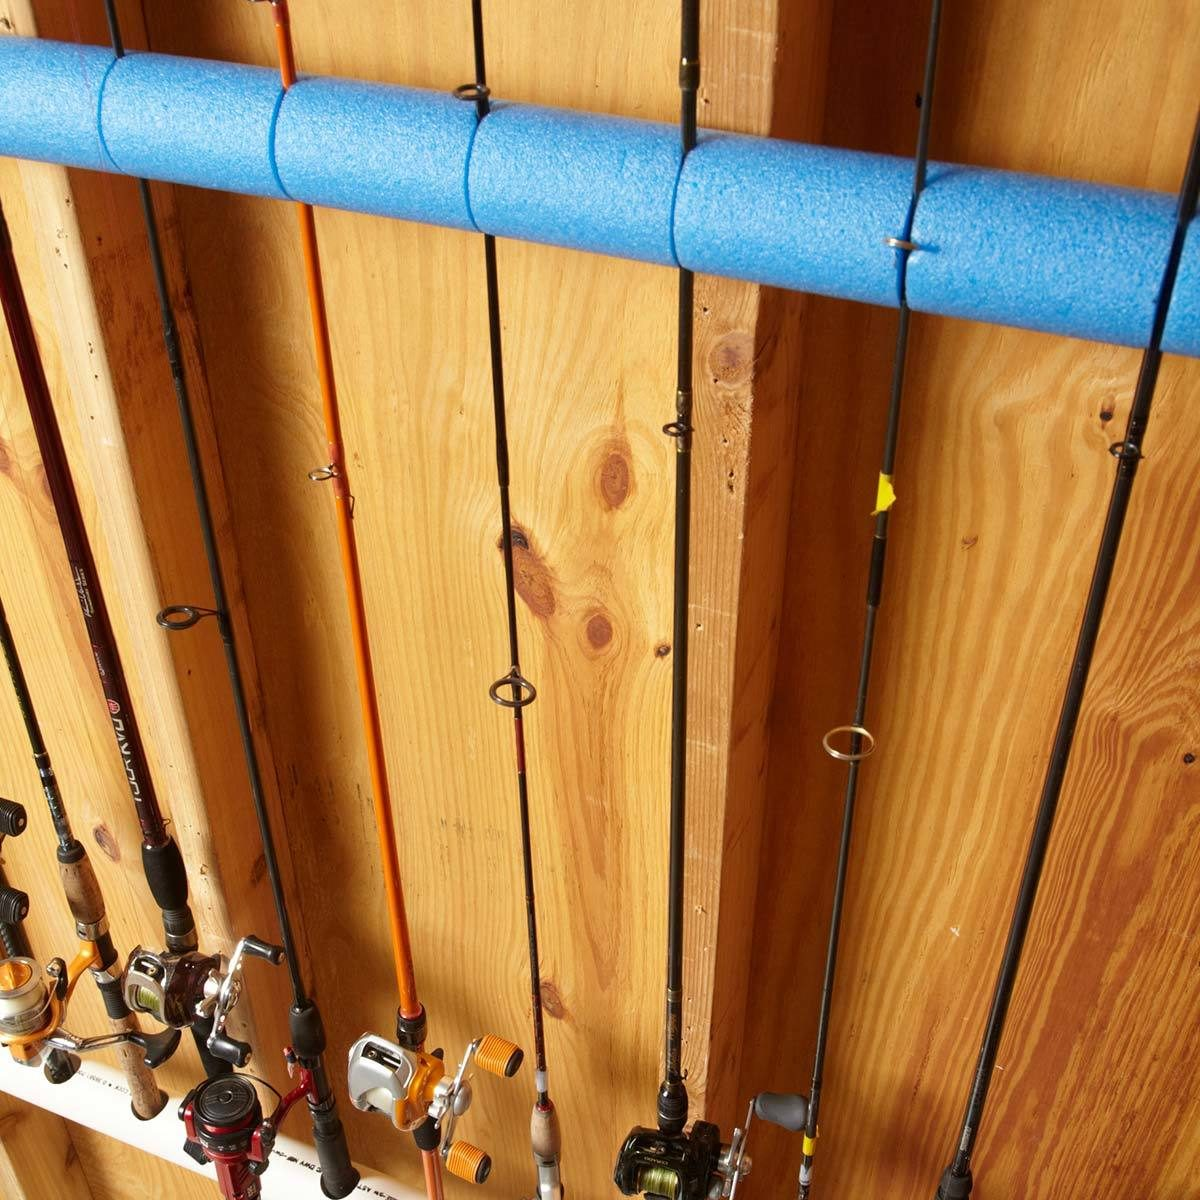 Fishing Rod Organizer pool noodles